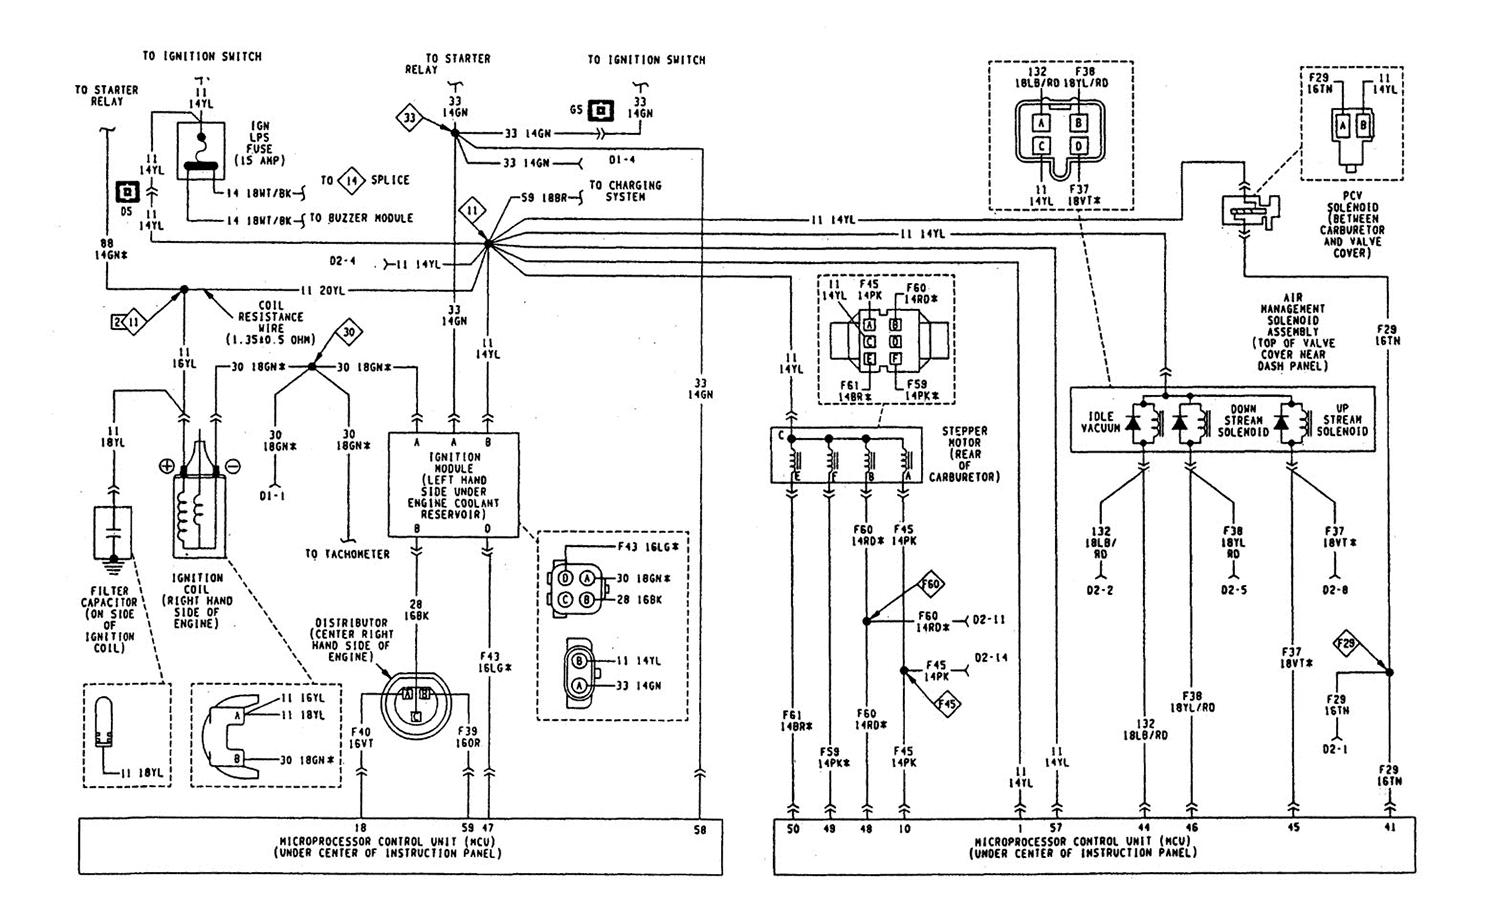 2003 Jeep Wrangler Wiring Diagram - Wiring Diagram View  Jeep Tj Ignition Wiring Diagram on jeep tj radio wiring diagram, jeep tj starter wiring, jeep tj ignition switch,